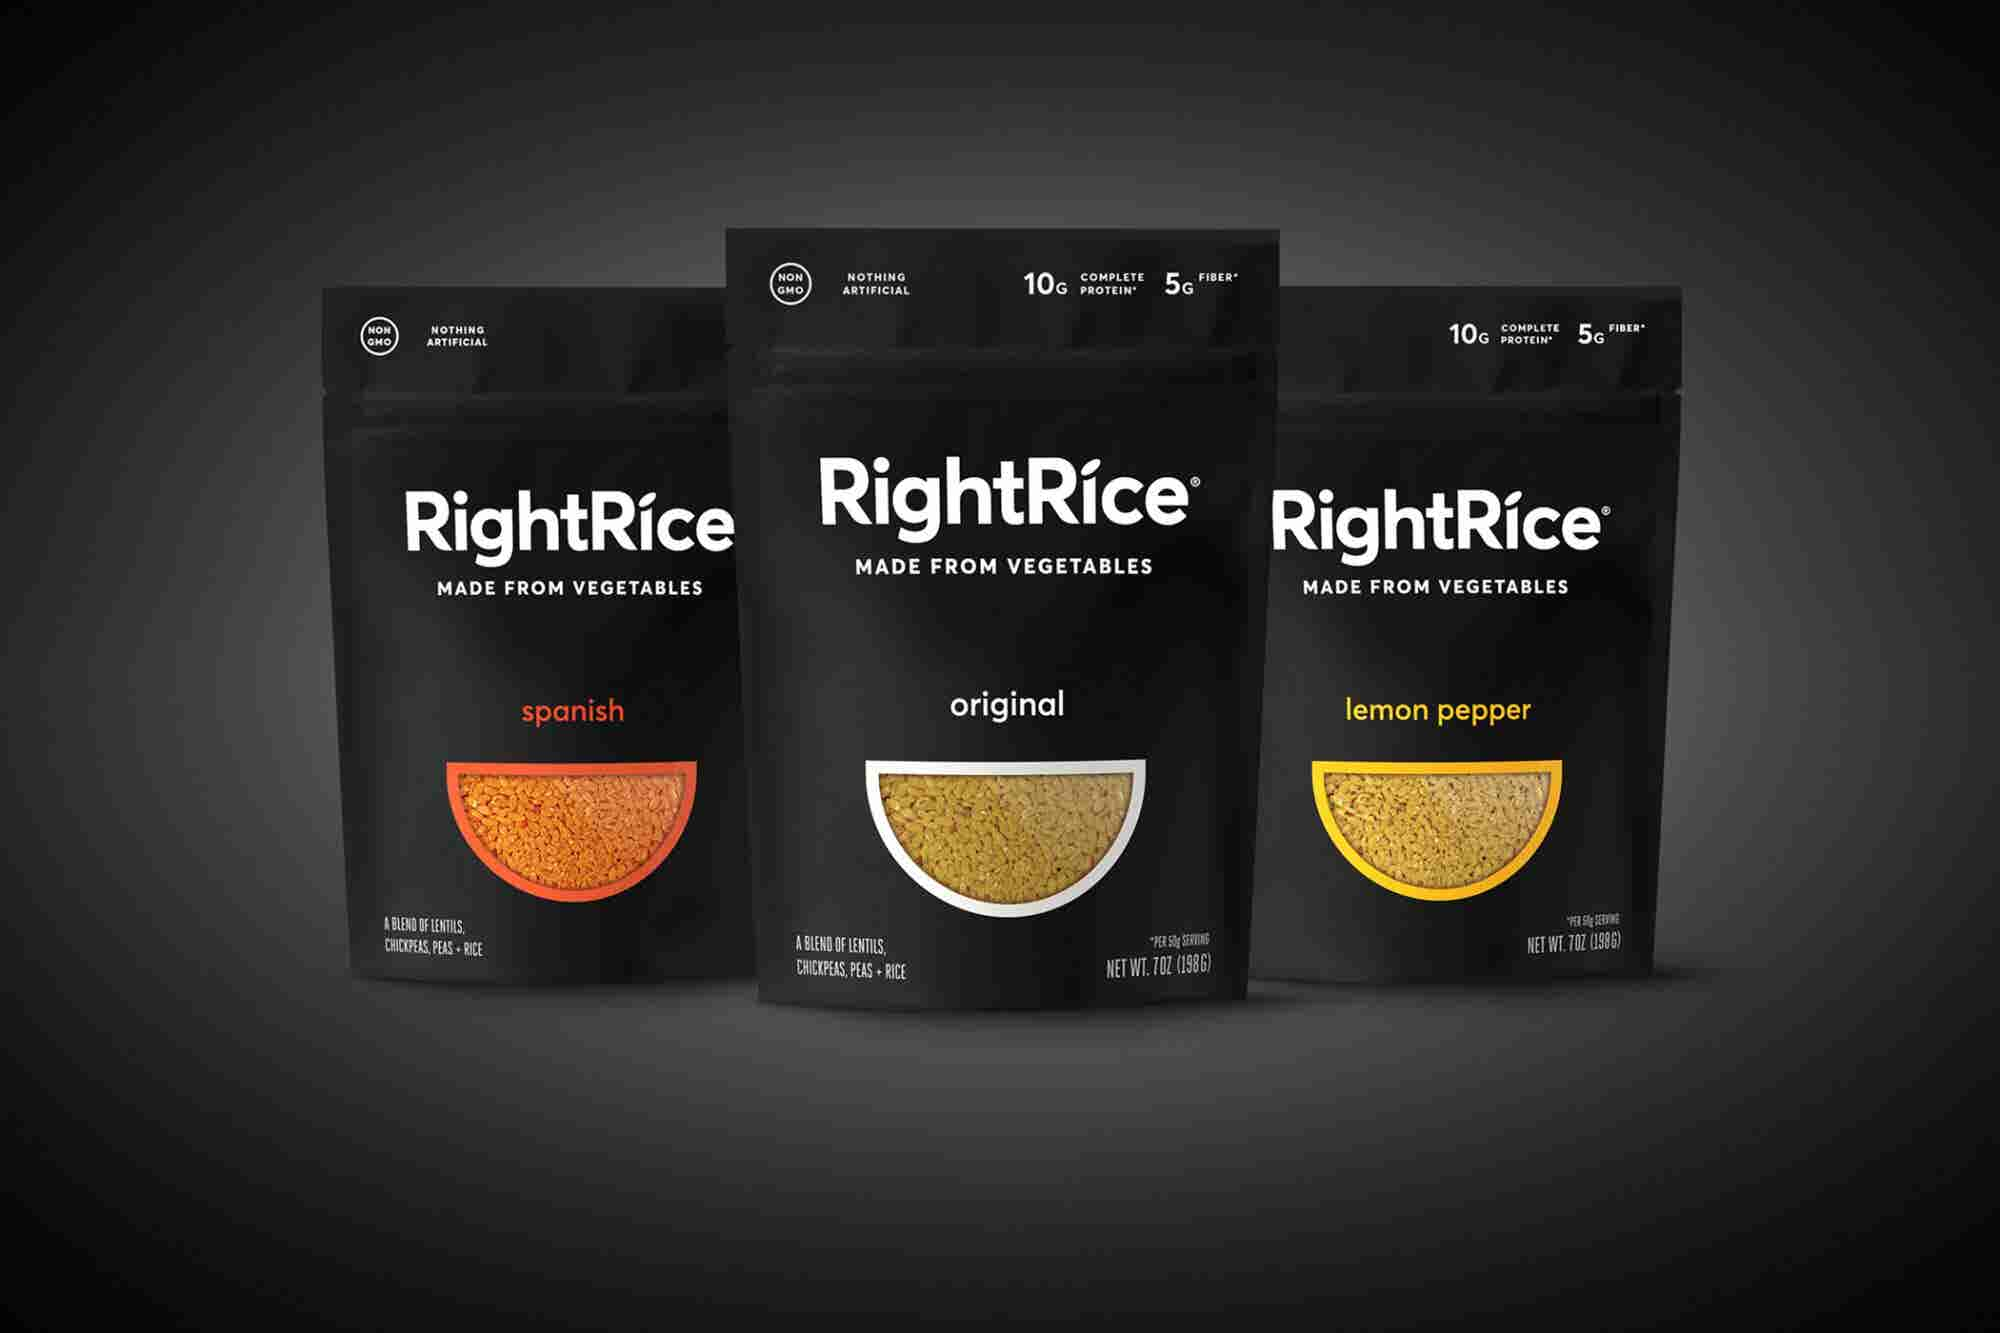 The Entrepreneur Behind Popchips Hopes to Have Another Hit With Rice Made From Vegetables